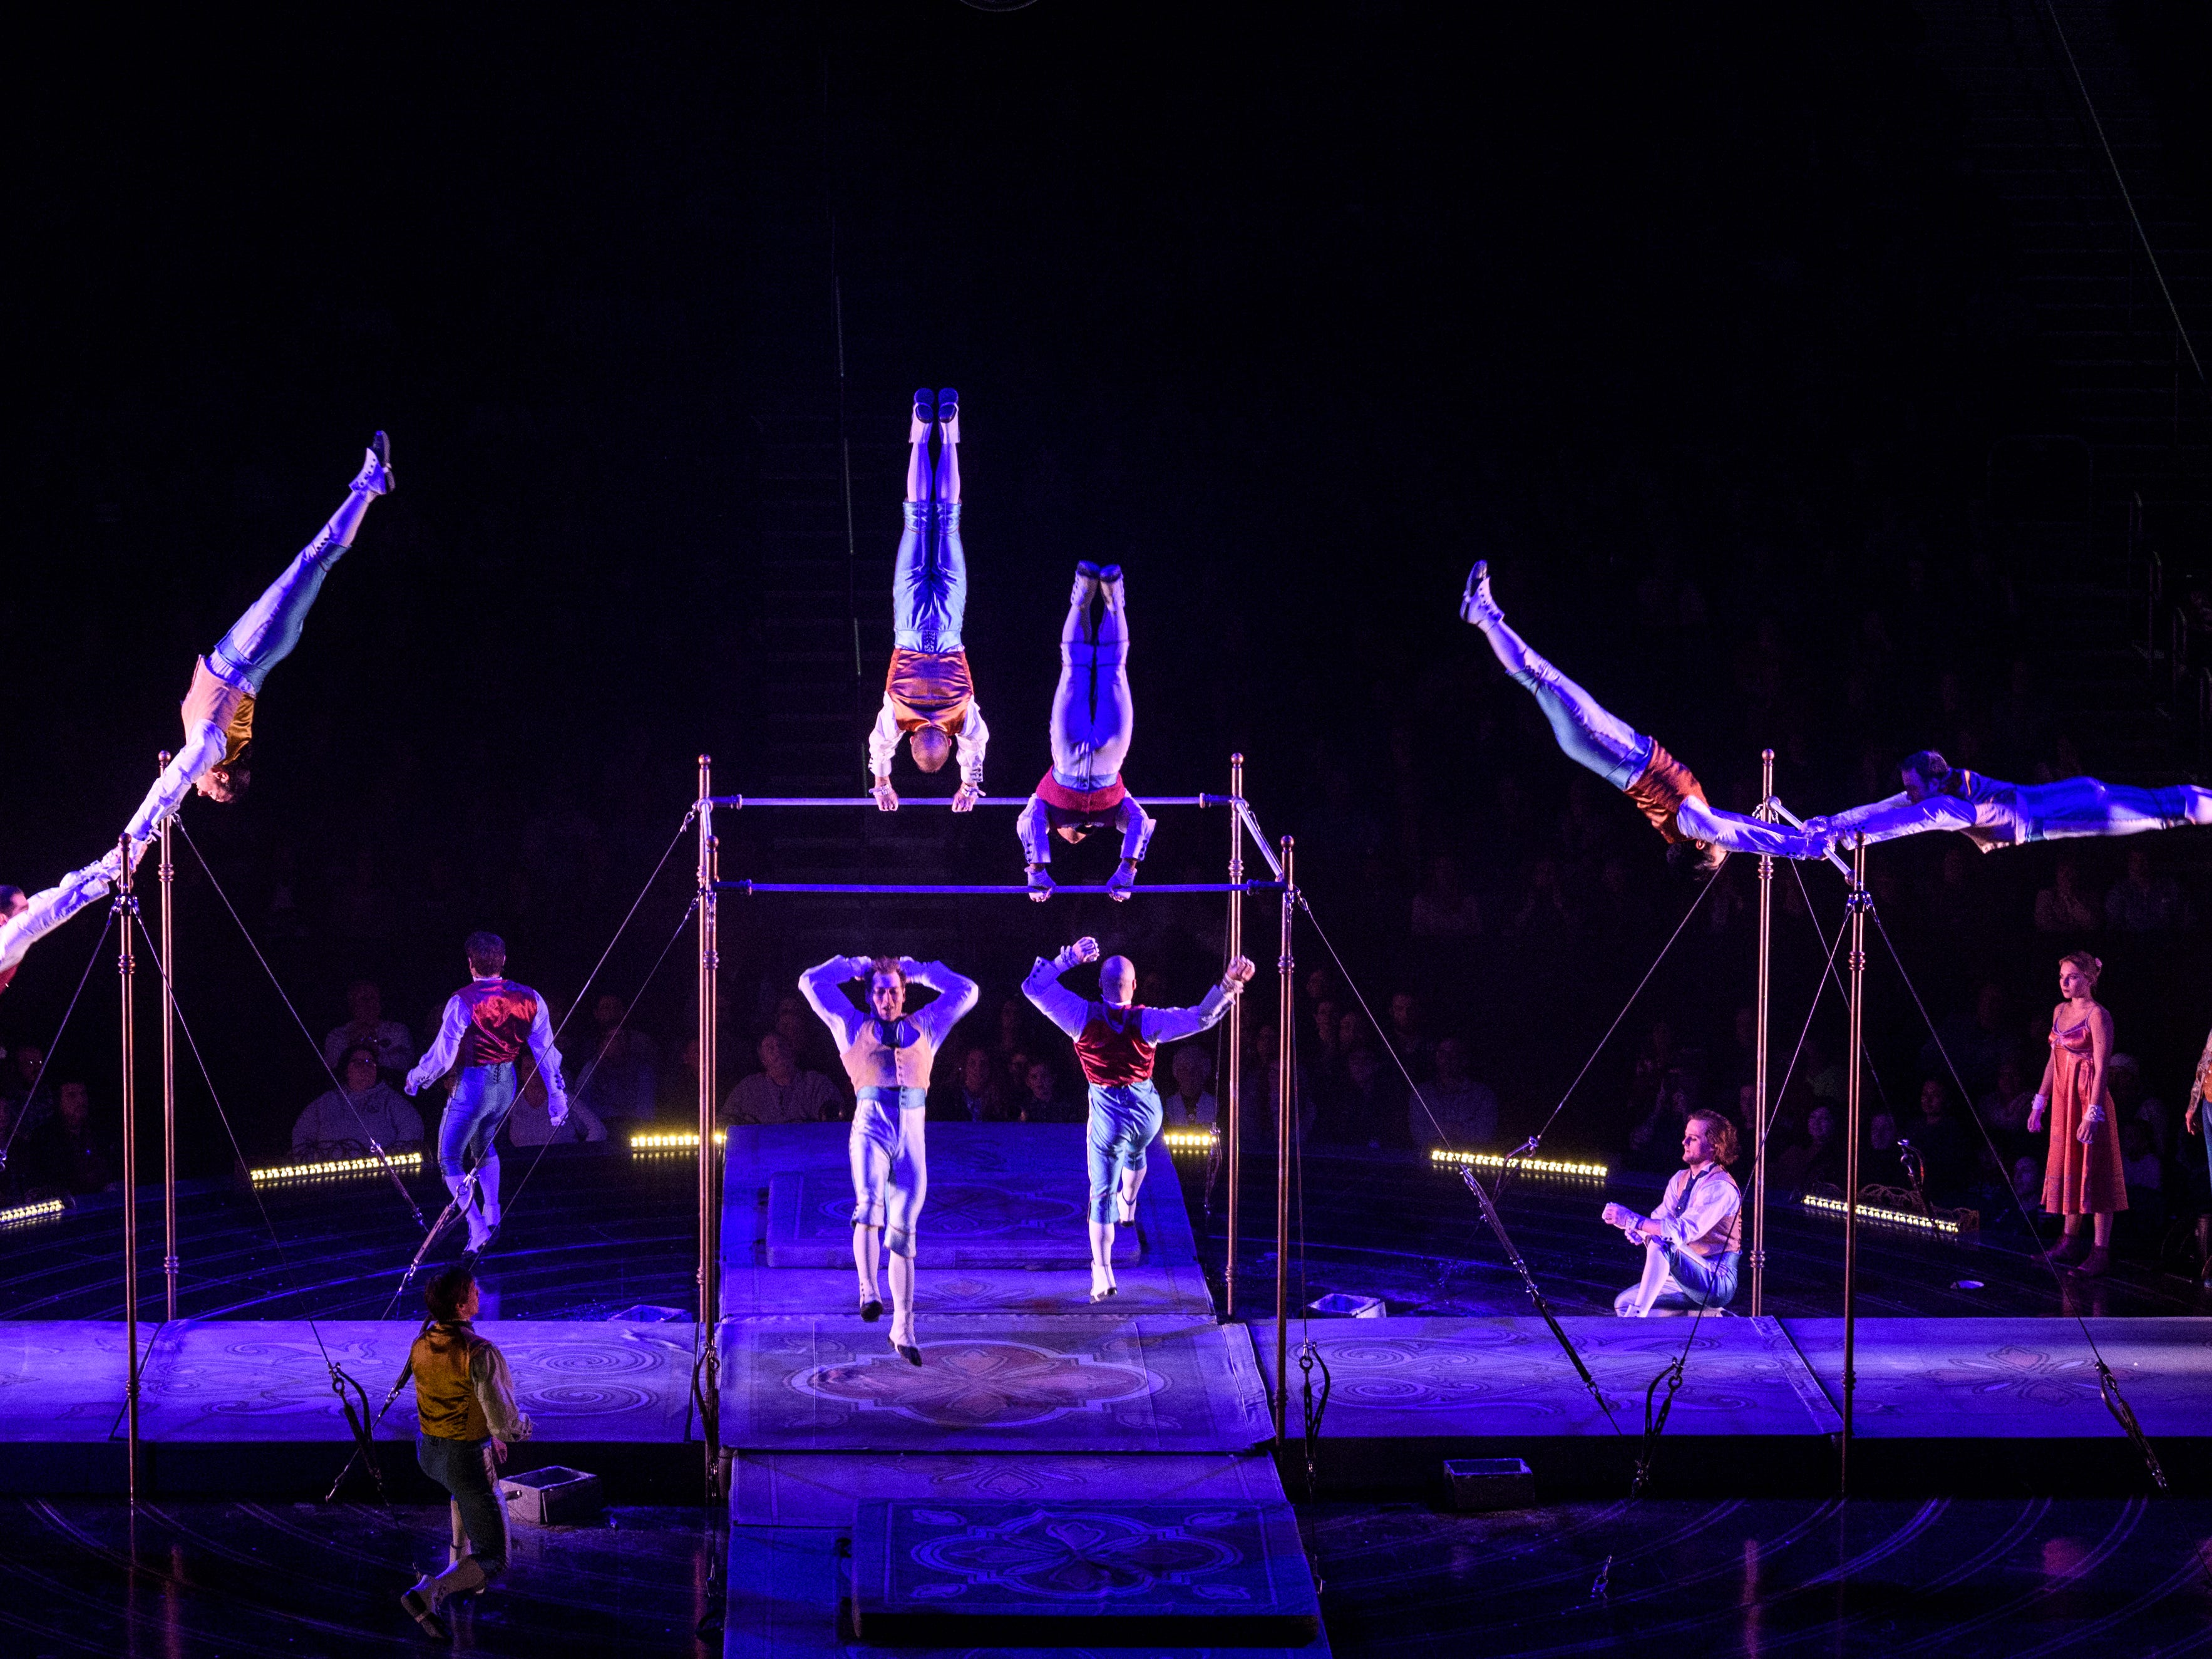 A group of performers mix horizontal bar techniques with circus arts during Tournik, the final act of Cirque du Soleil's Corteo show at Ford Center in Evansville, Ind., Wednesday night, Jan. 23, 2019.